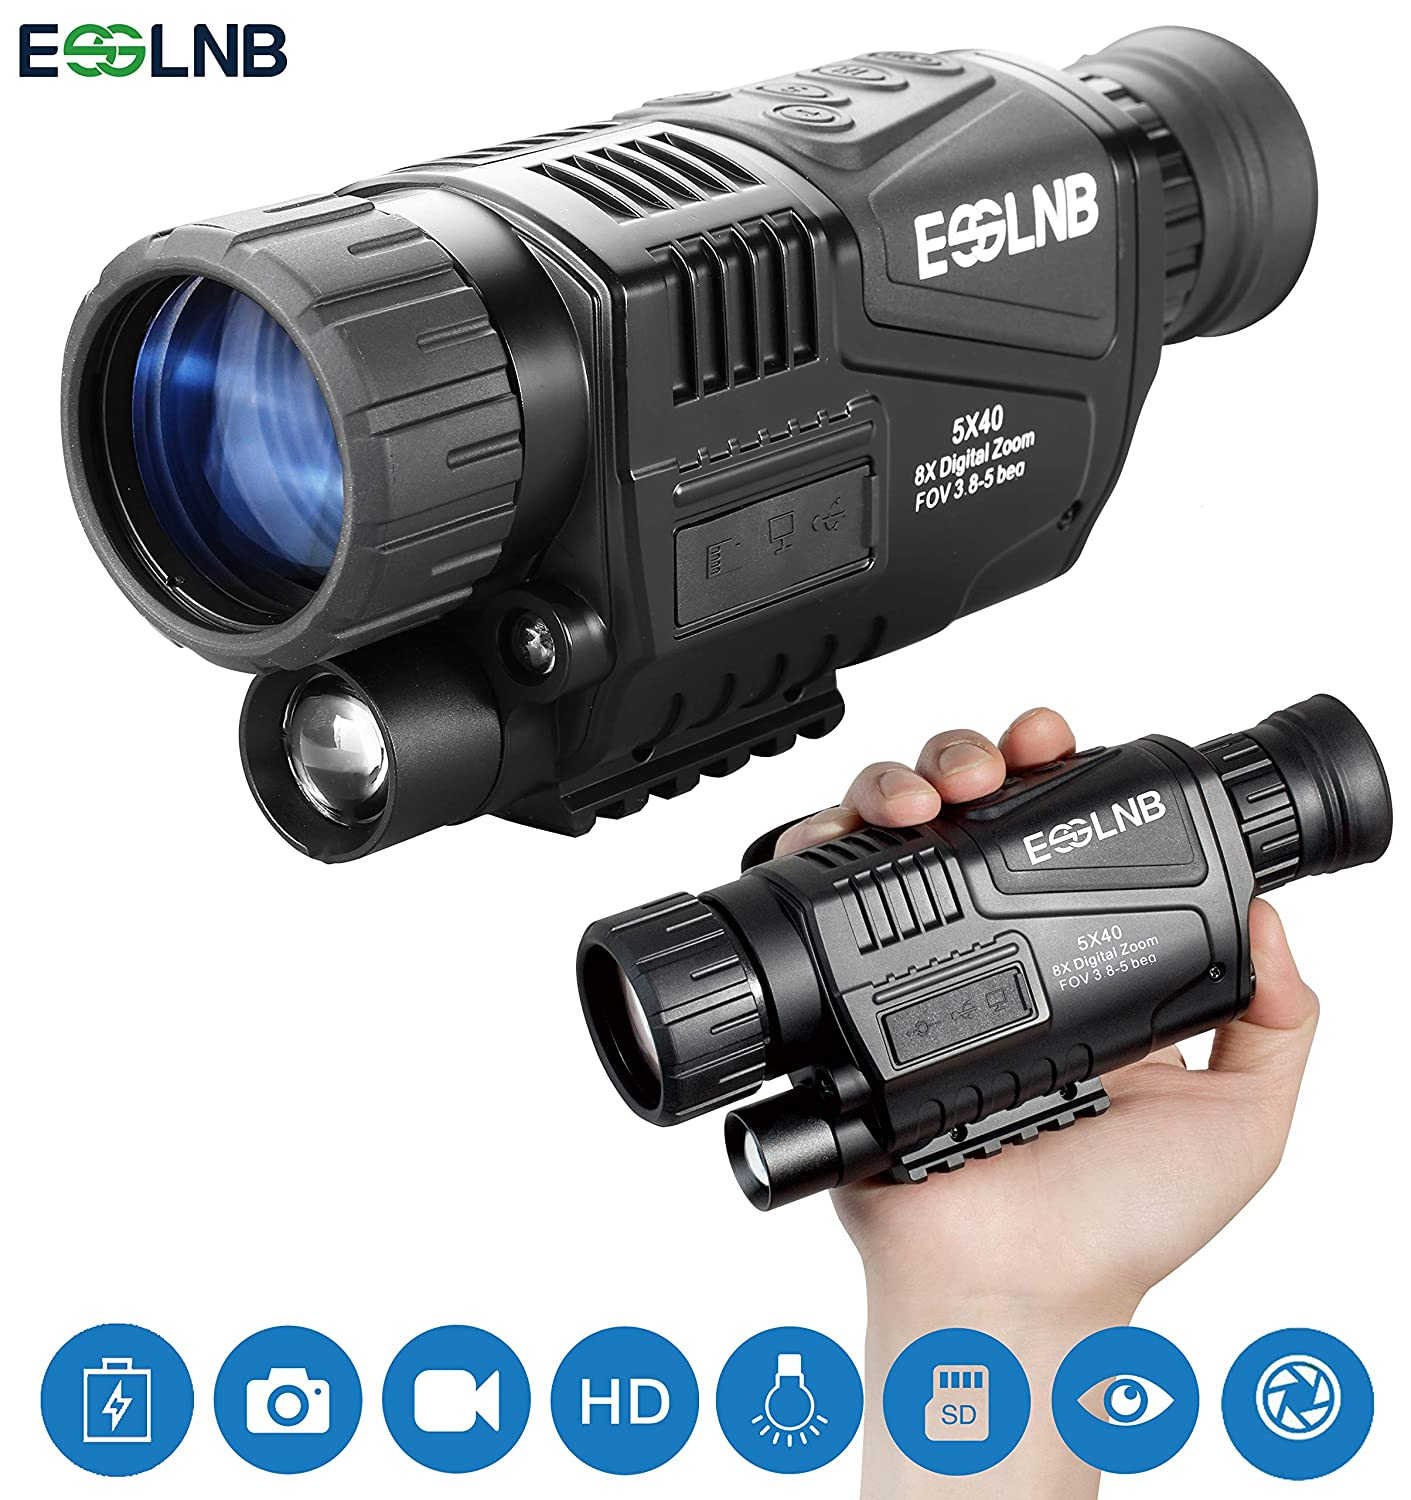 ESSLNB Night Vision Monocular 5X40 Night Vision Infrared IR Camera HD Digital Night Vision Scopes with 1.5 TFT LCD Take Photos and Video Playback Function and TF Card for Hunting Security Surveilla